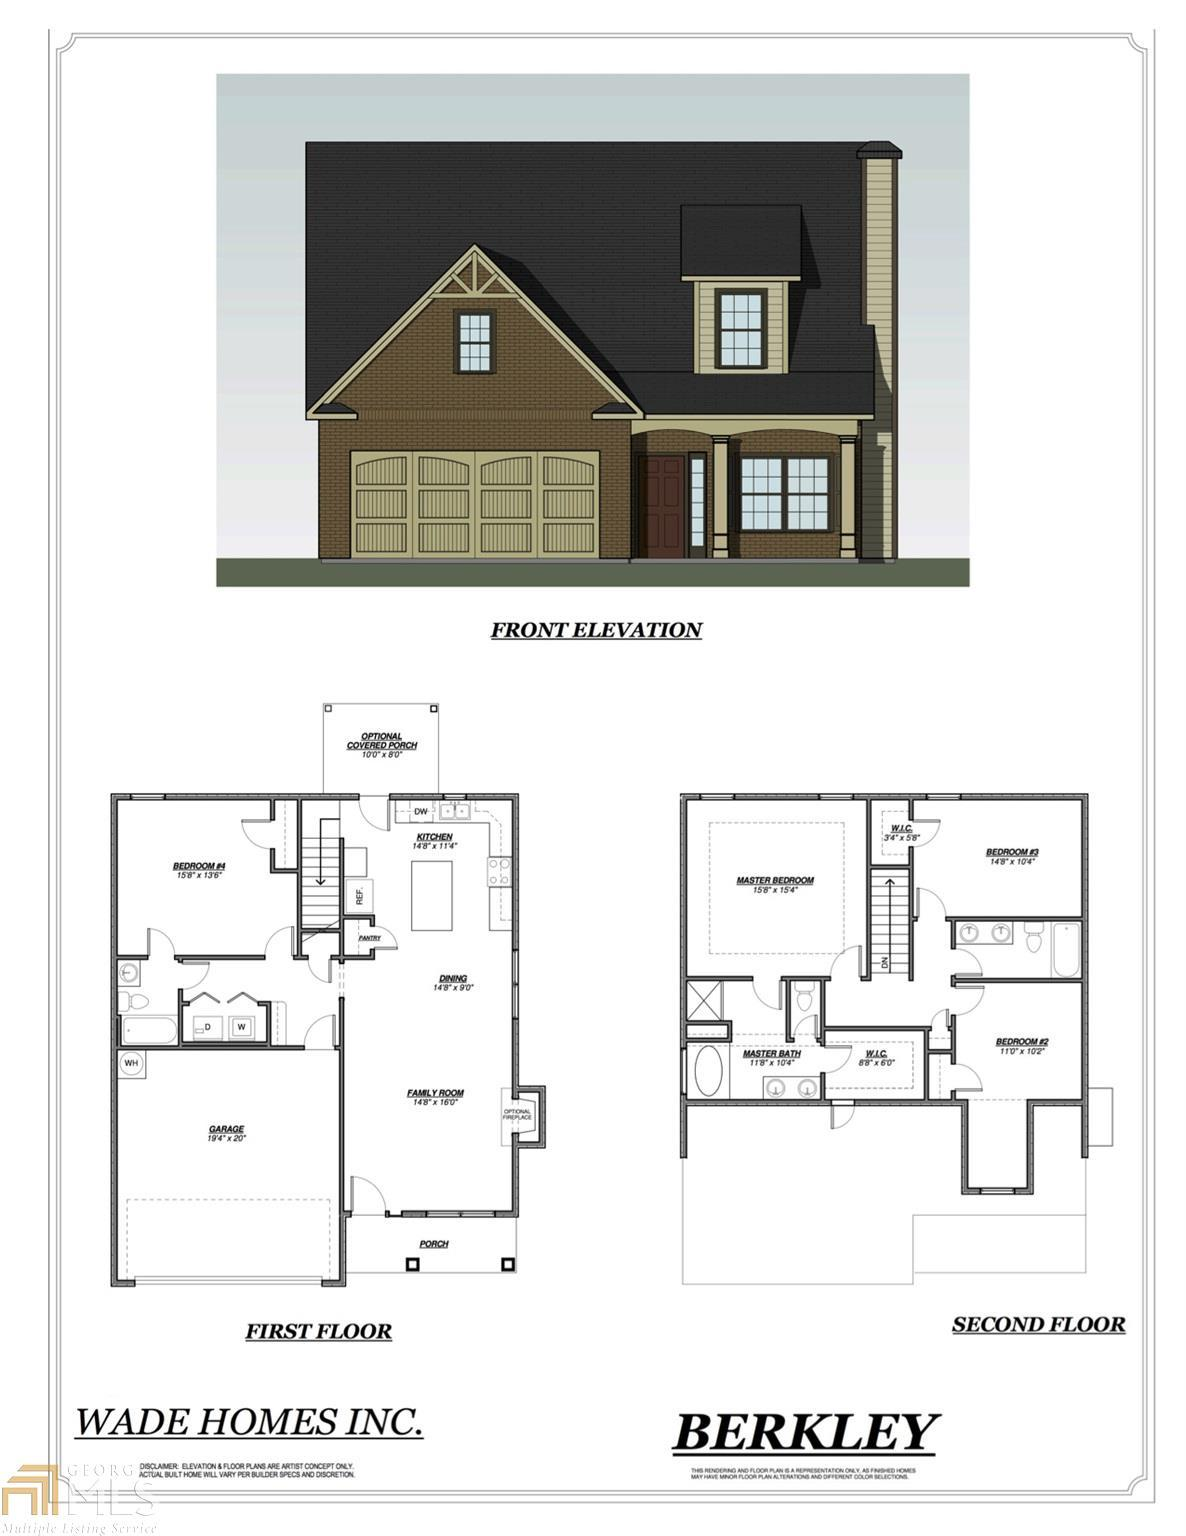 Monticello House Plan Style on 90 degree house plans, oswego house plans, jasper house plans, top cottage house plans, baldwin house plans, ranch house plans, simple open floor house plans, alexandria house plans, rome house plans, henderson house plans, rotunda house plans, oakland house plans, sheridan house plans, texarkana house plans, springfield house plans, unique house plans, historic house plans, bella vista house plans, hillsdale house plans, jeffersonian house plans,